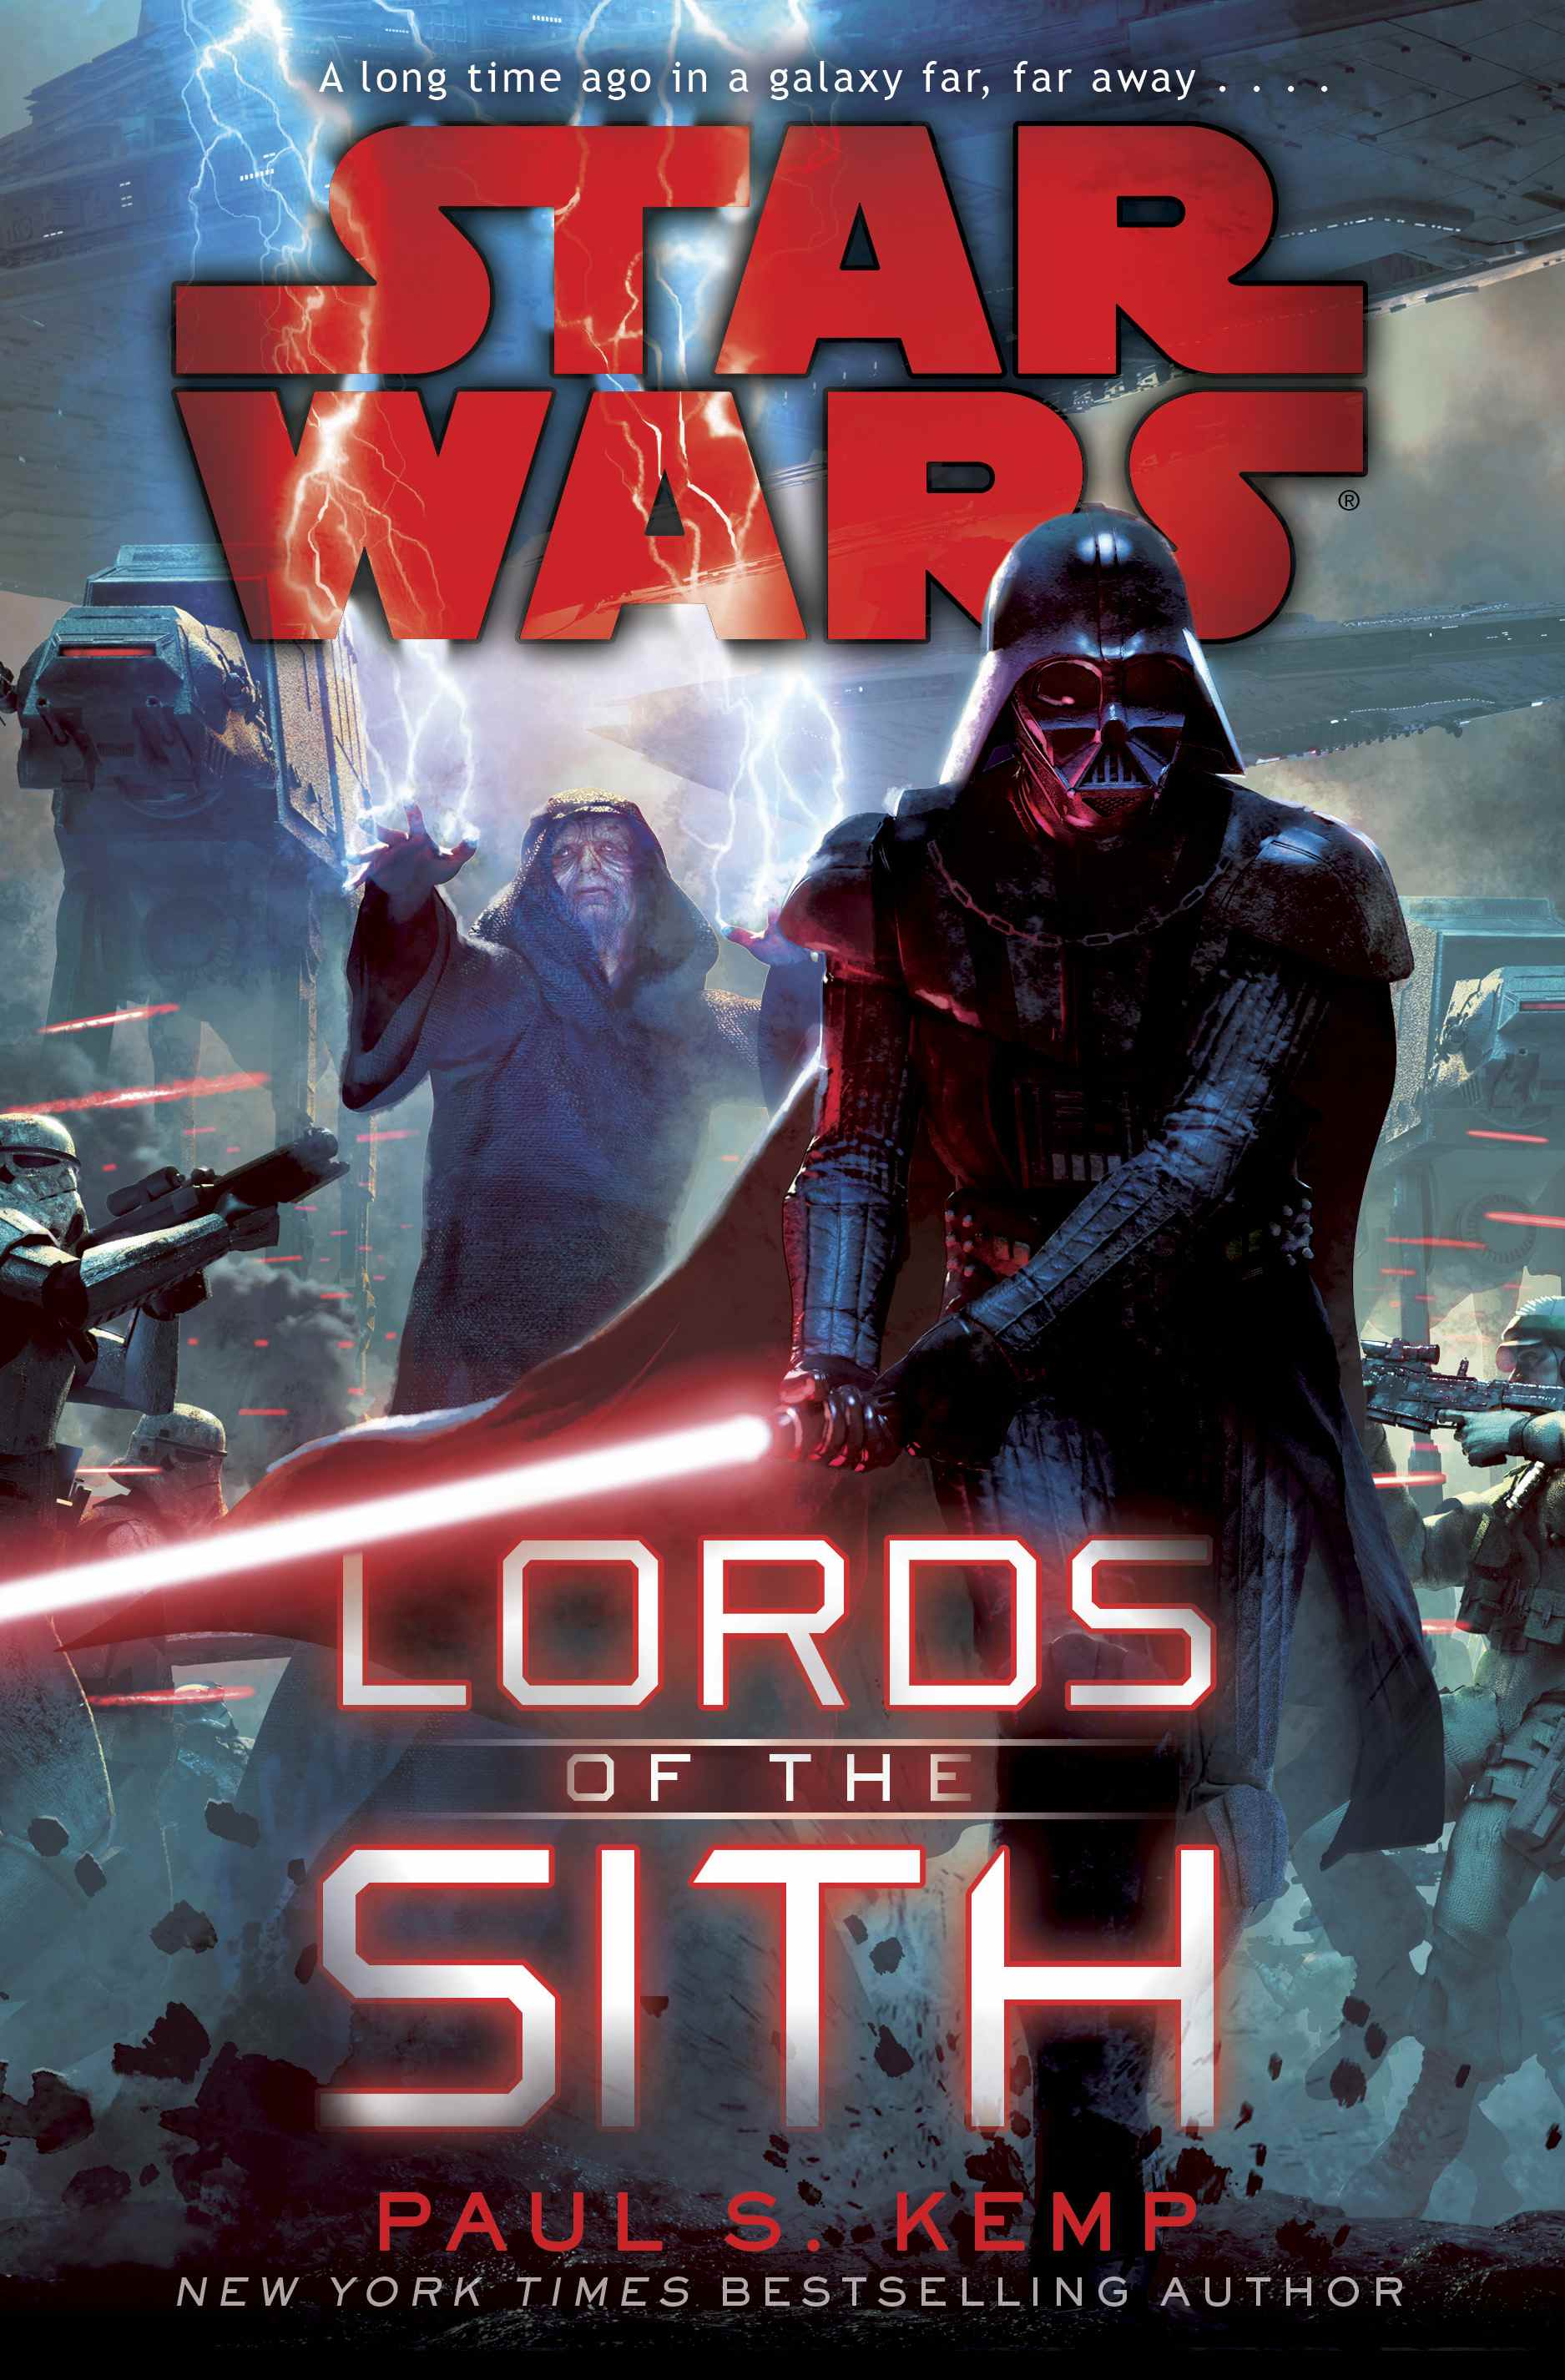 Star Wars: Lords of the Sith Book Cover